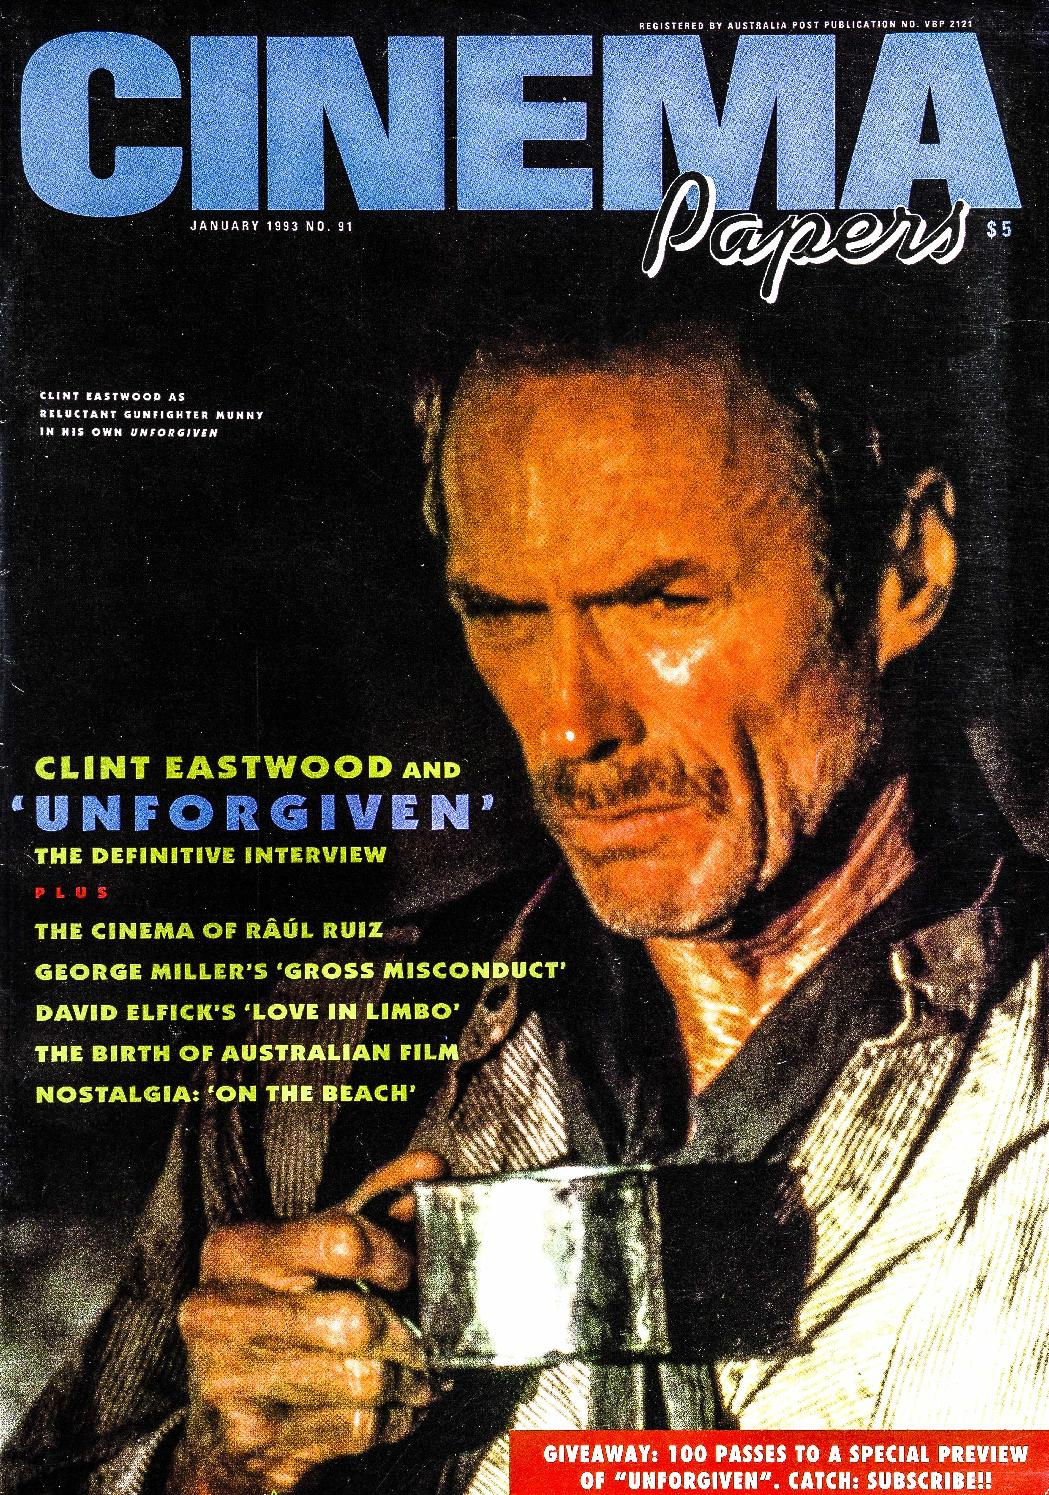 big sale 3706f d908a Cinema Papers No.91 January 1993 by UOW Library - issuu